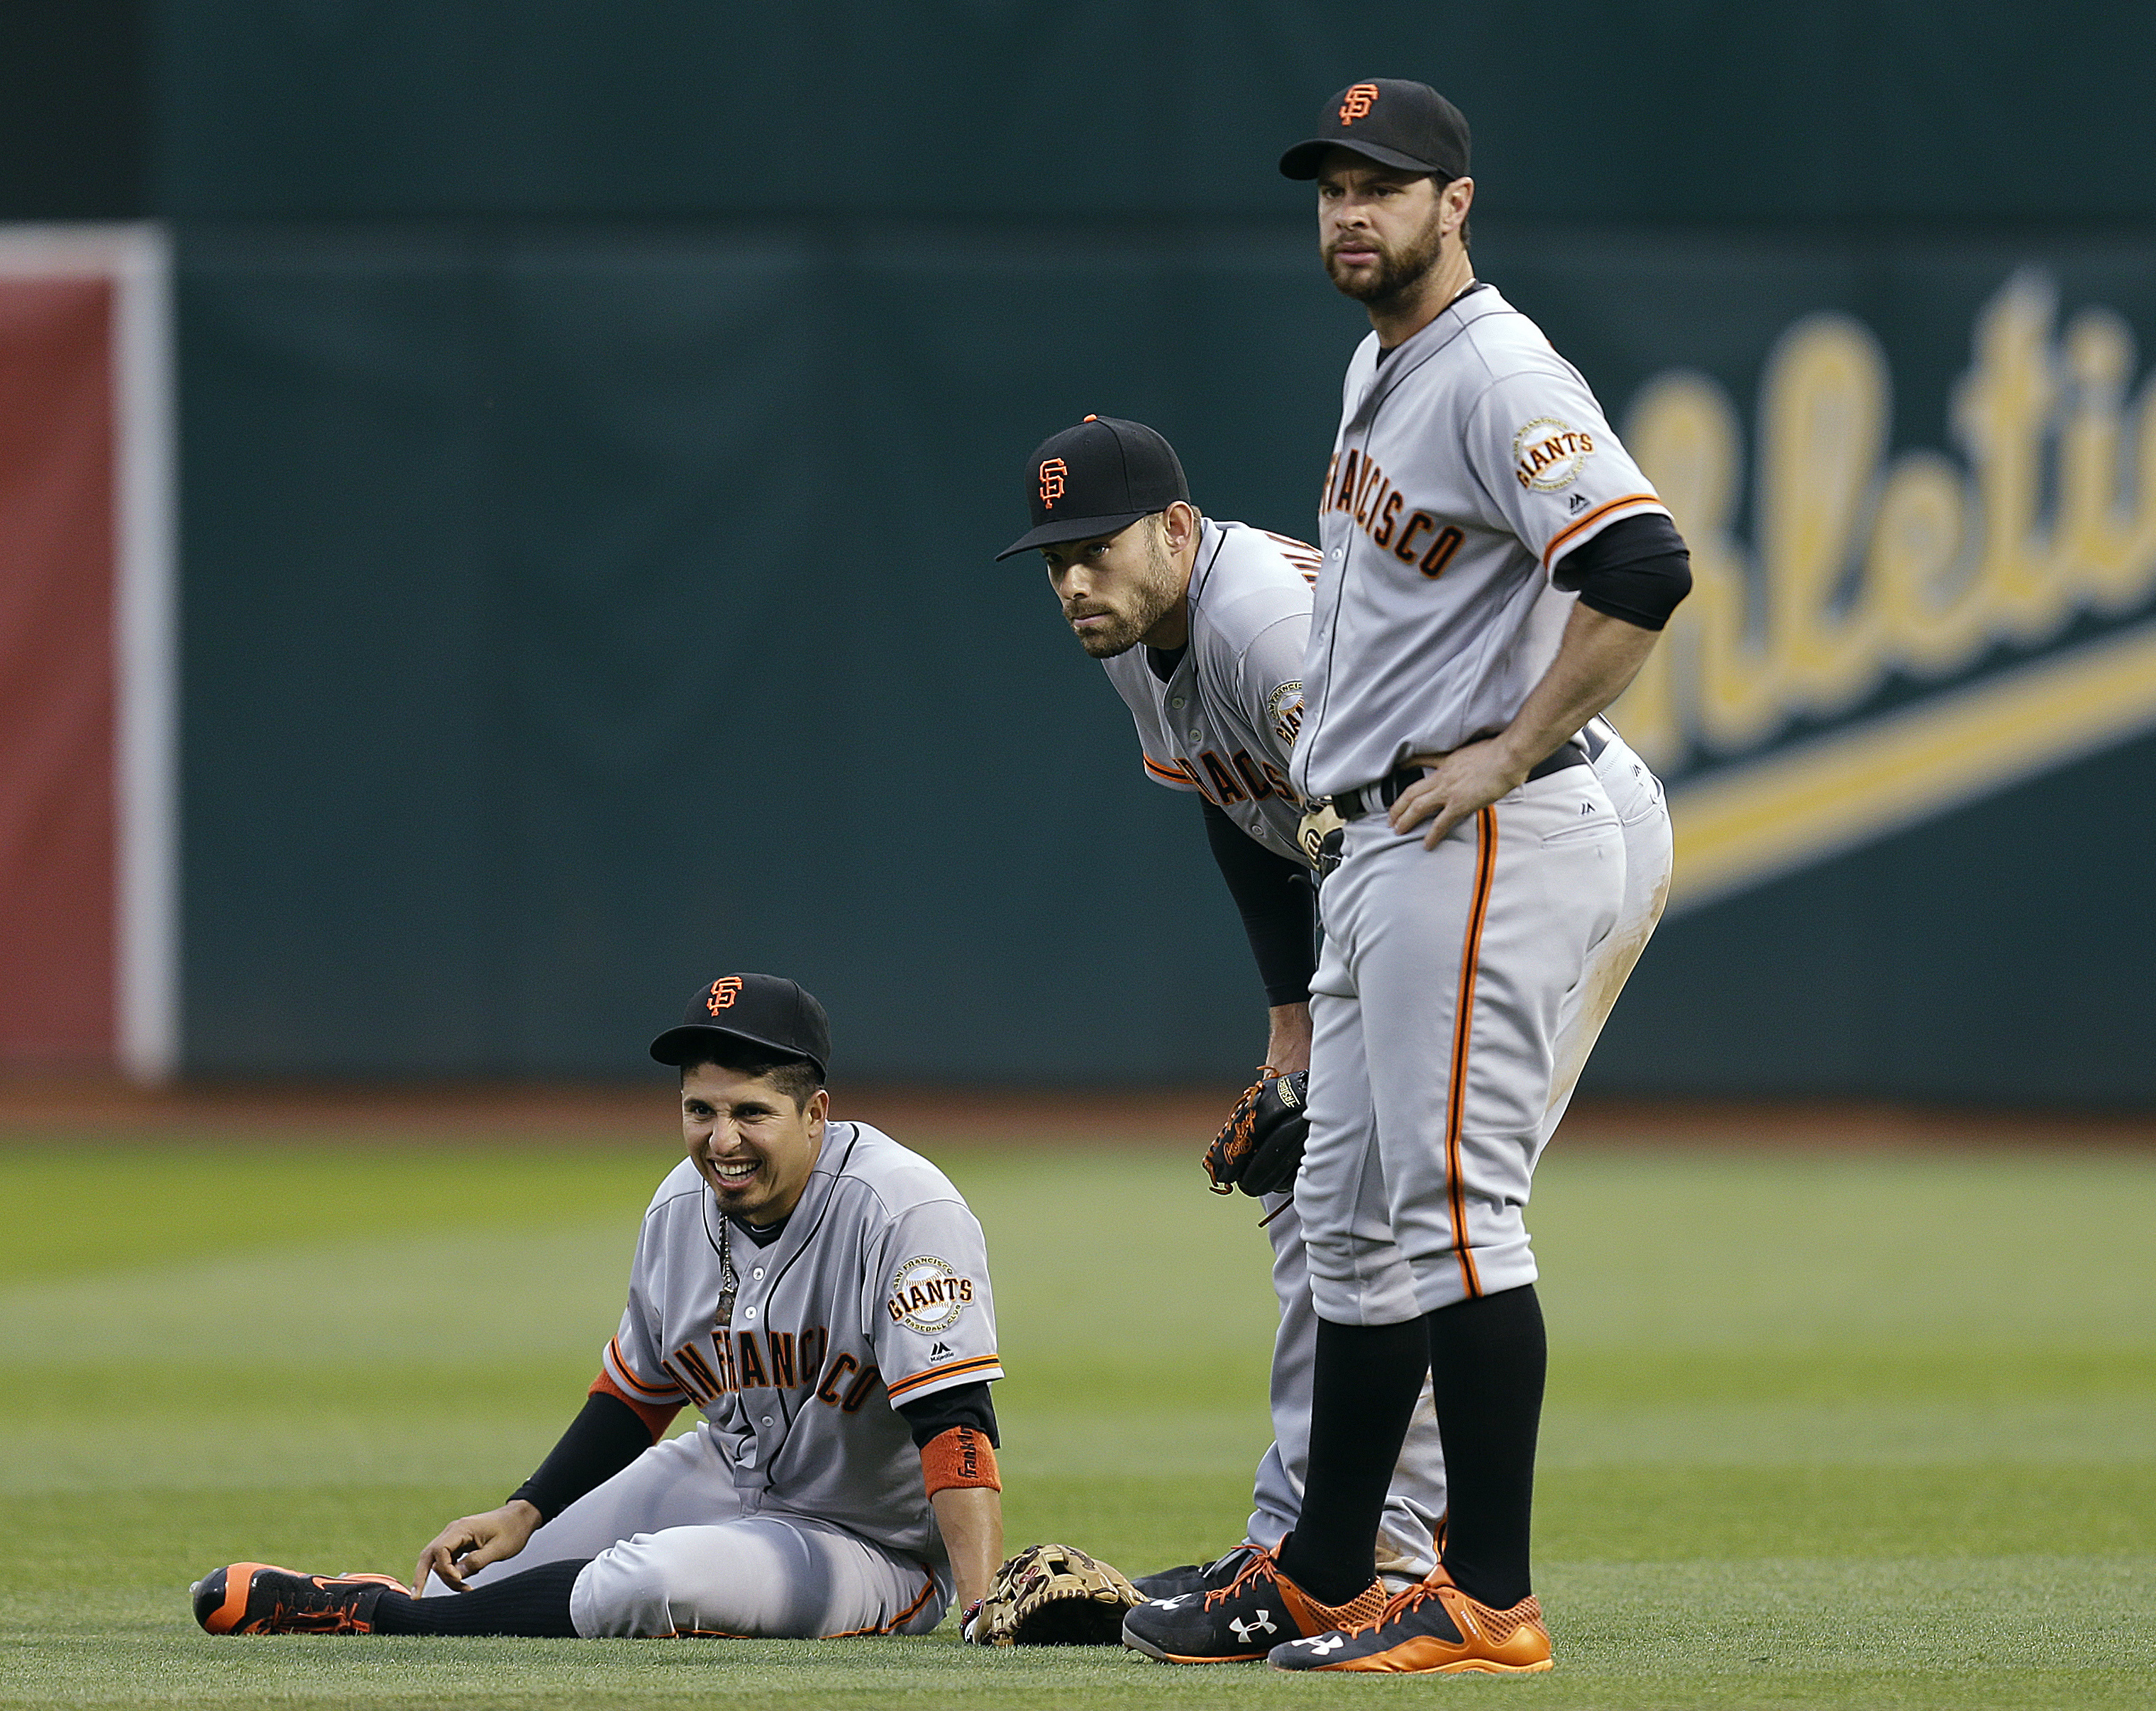 San Francisco Giants second baseman Raul Pena, left, waits for a trainer after colliding with outfielder Mac Williamson, center, during the third inning of a baseball game against the Oakland Athletics on Wednesday, June 29, 2016, in Oakland, Calif. At ri